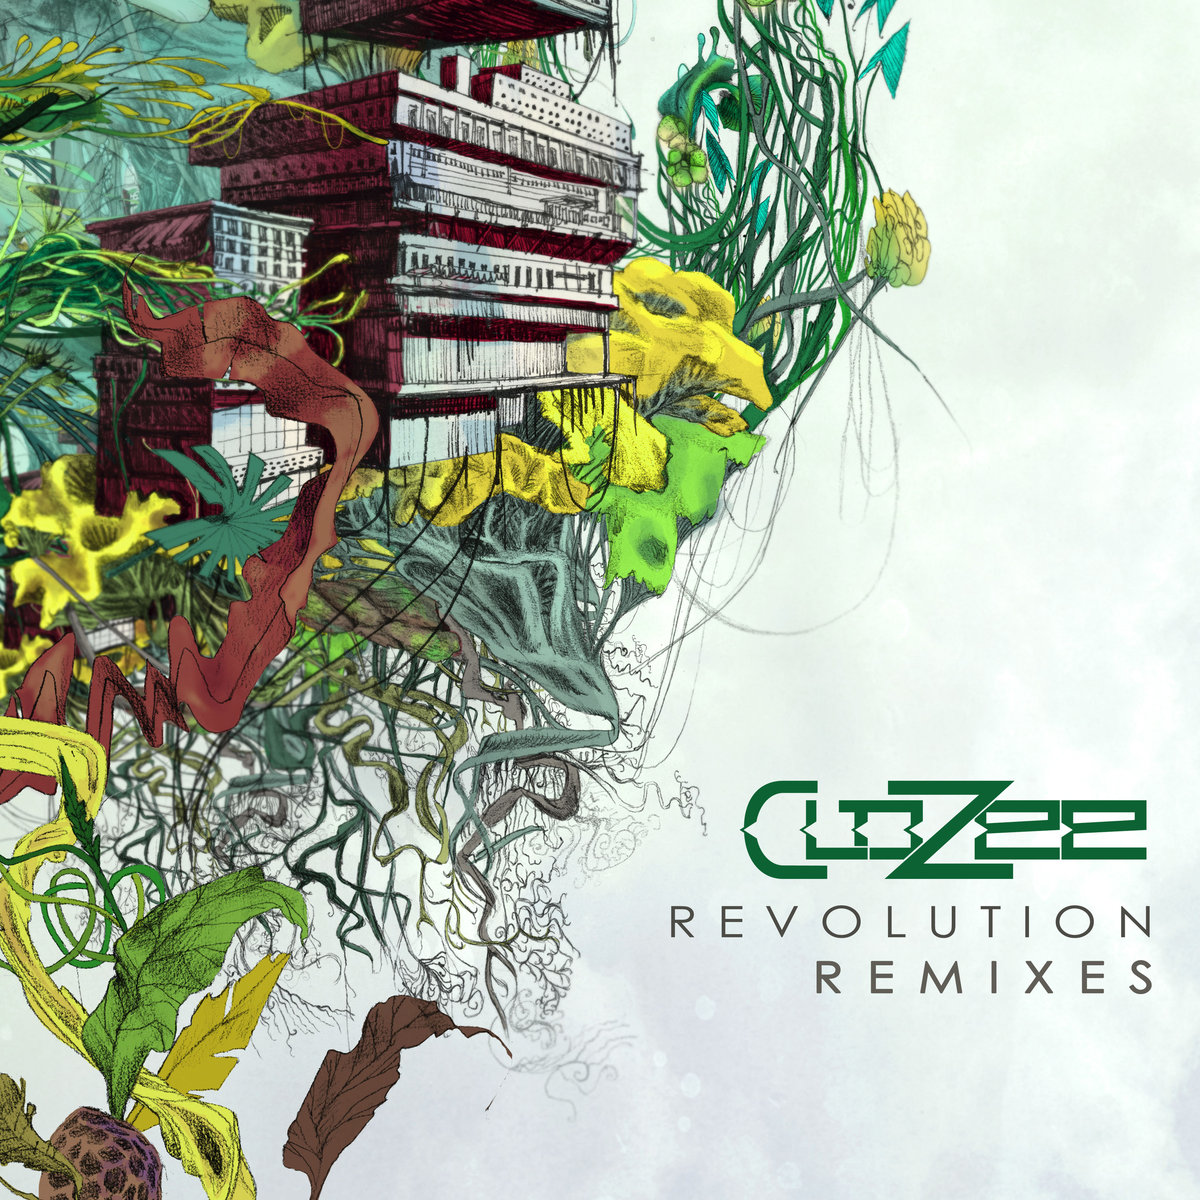 CloZee - Sankar's Lake (ill.Gates Remix) @ 'Revolution Remixes' album (chill, downtempo)